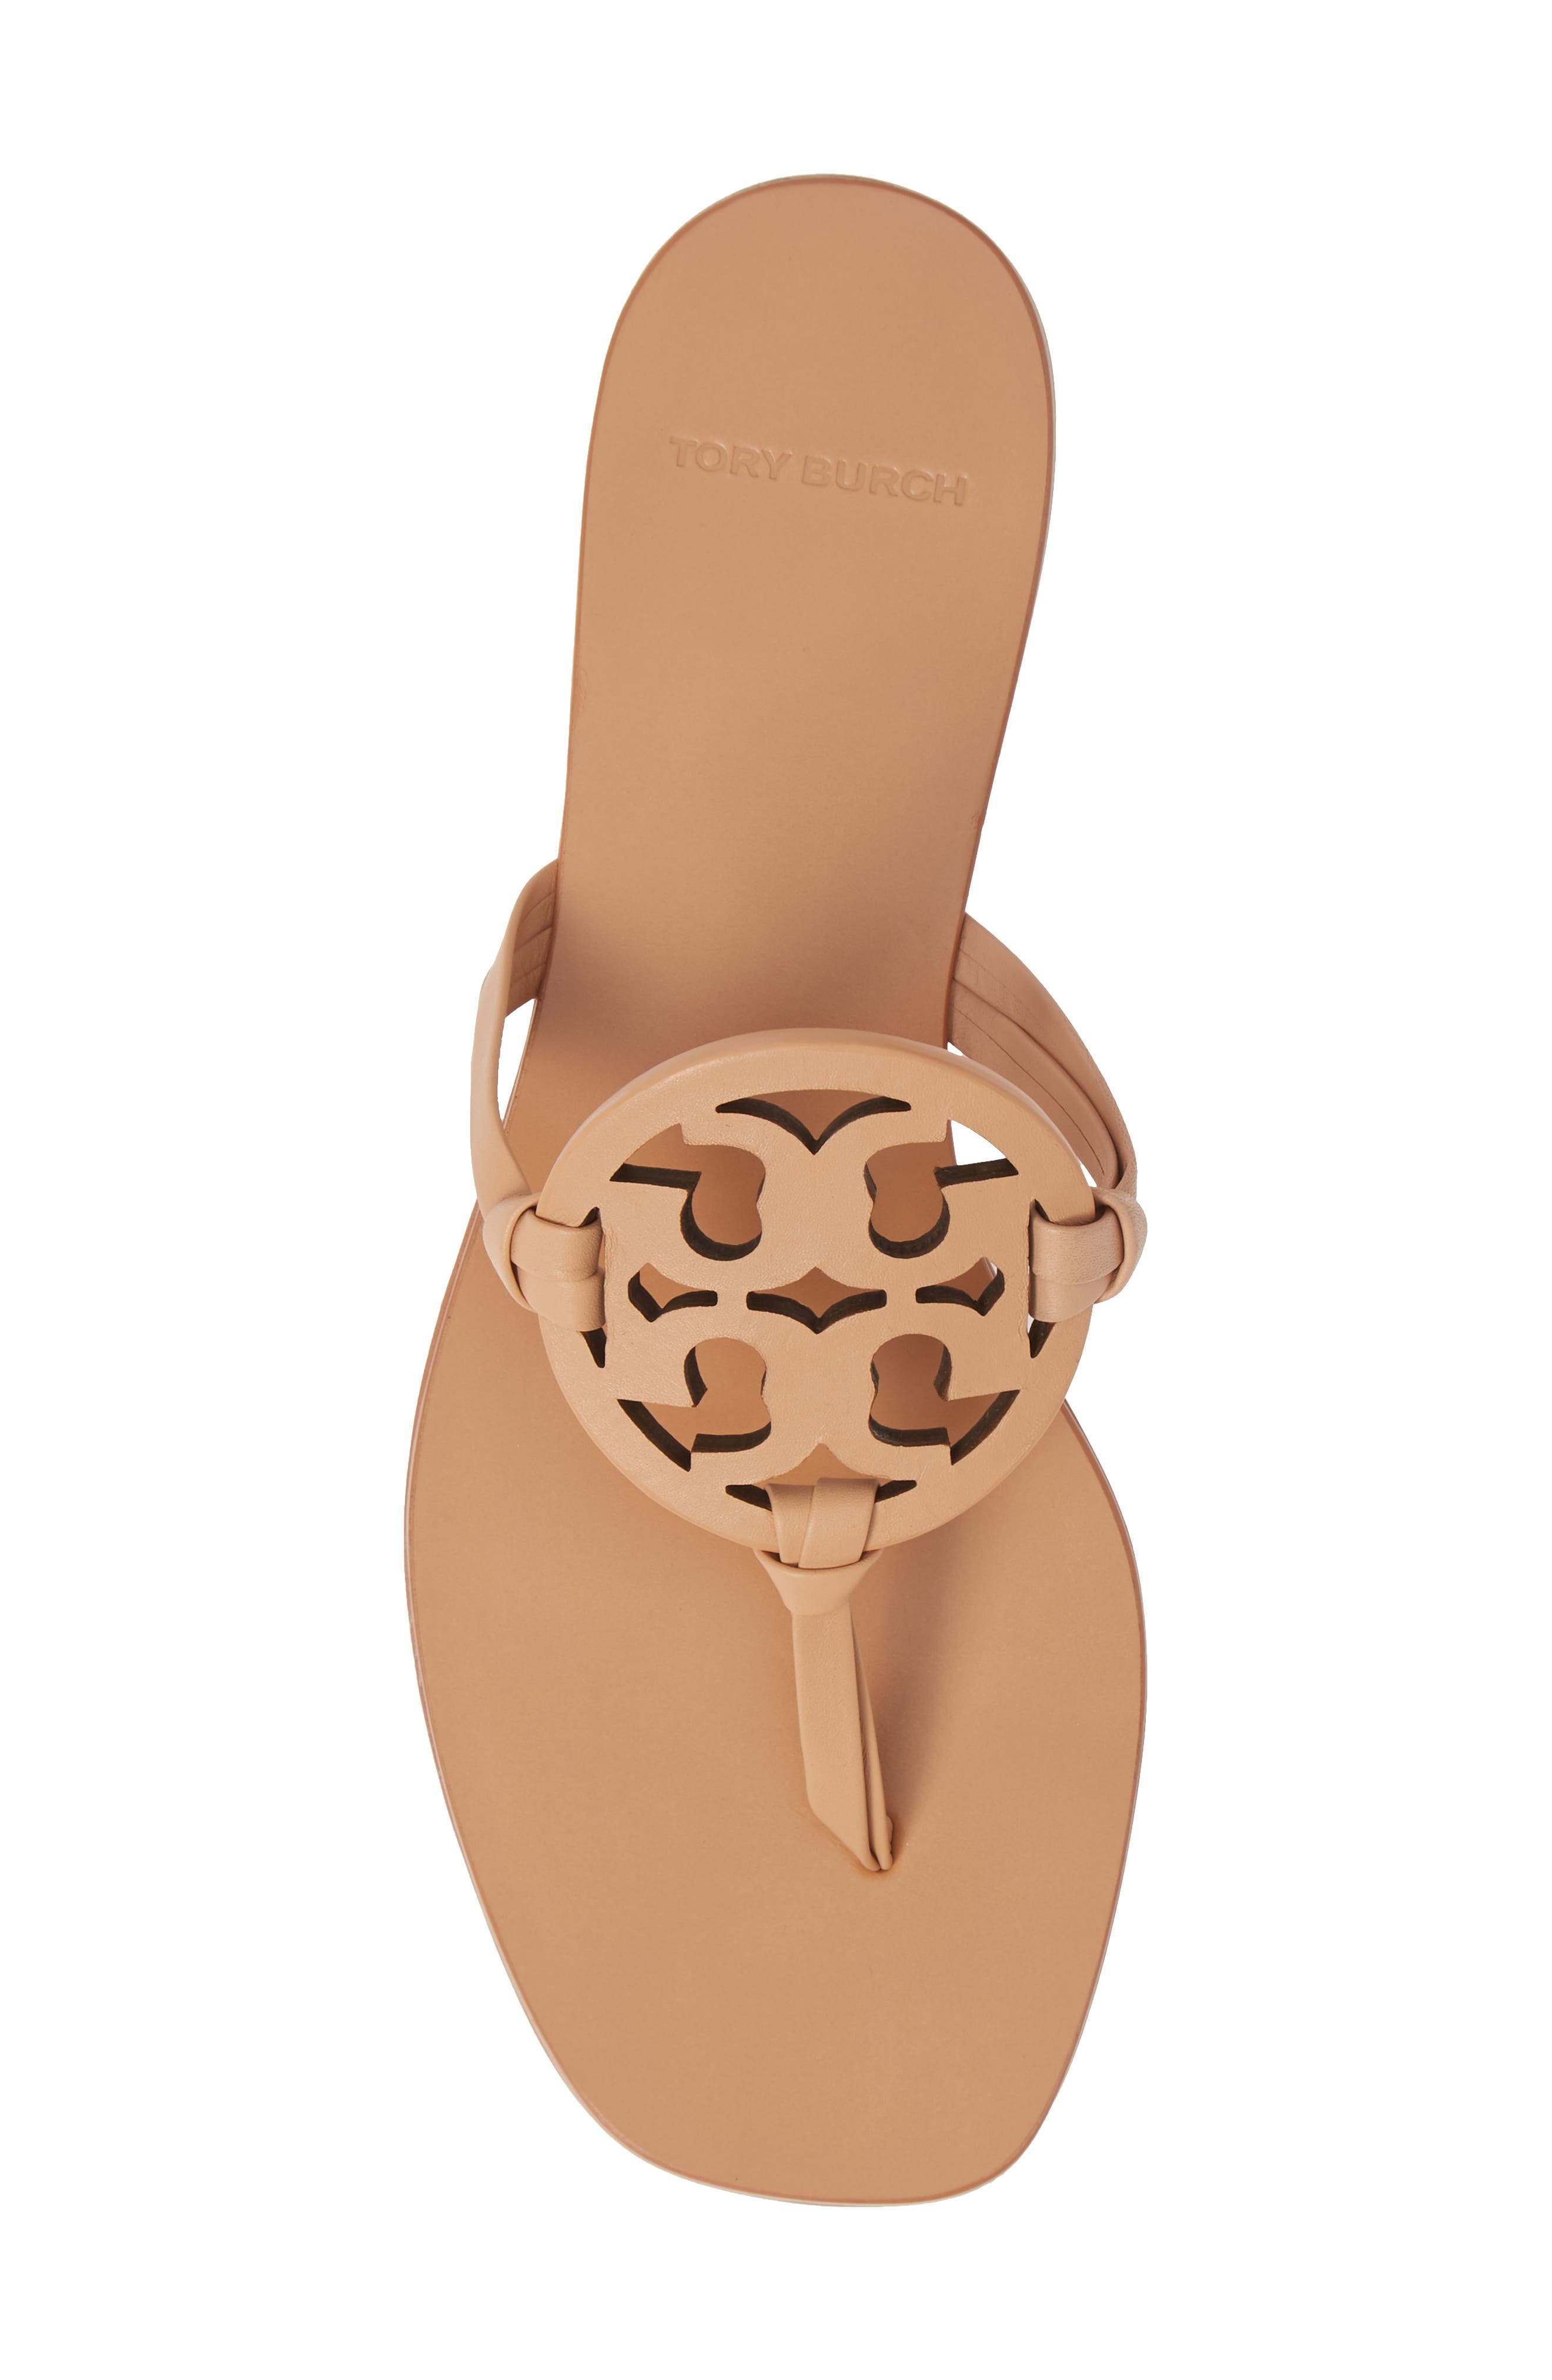 TORY BURCH, Miller Square Toe Thong Sandal, Alternate thumbnail 5, color, NATURAL VACHETTA